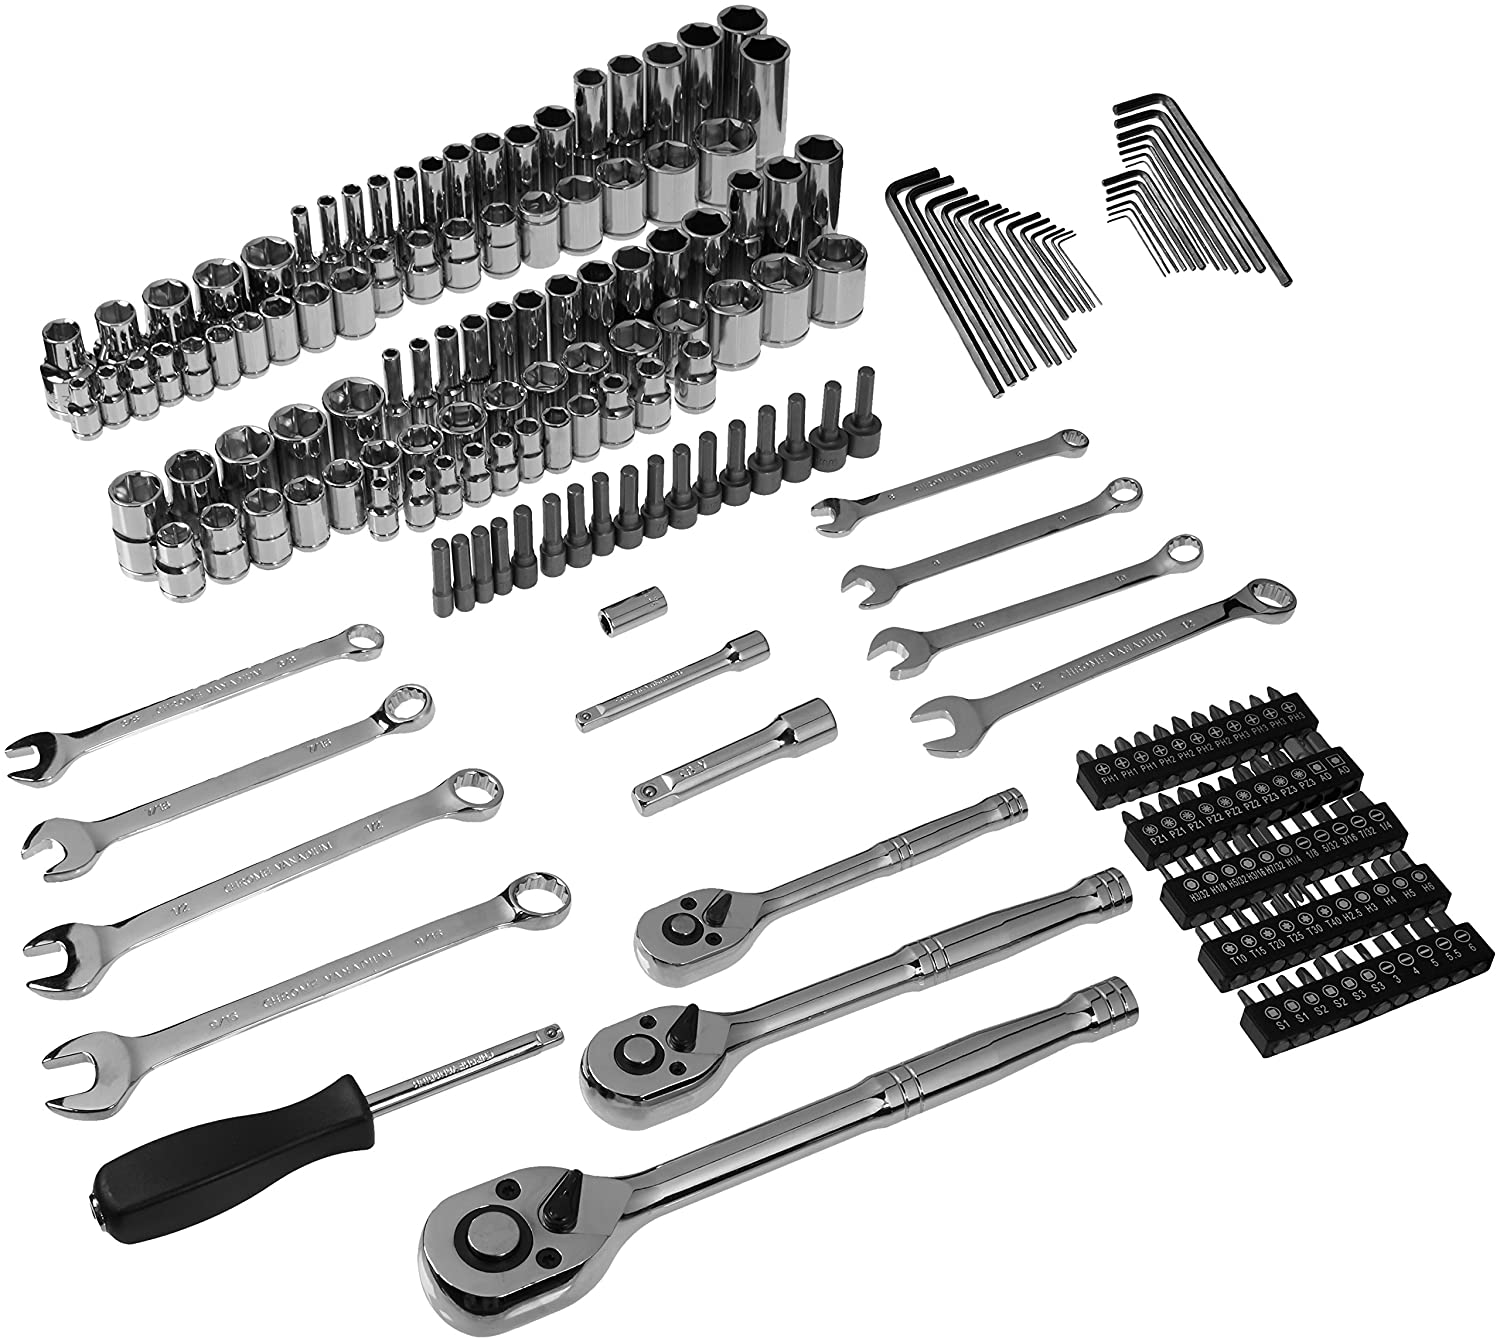 Basics Mechanics Socket Set 201-Piece